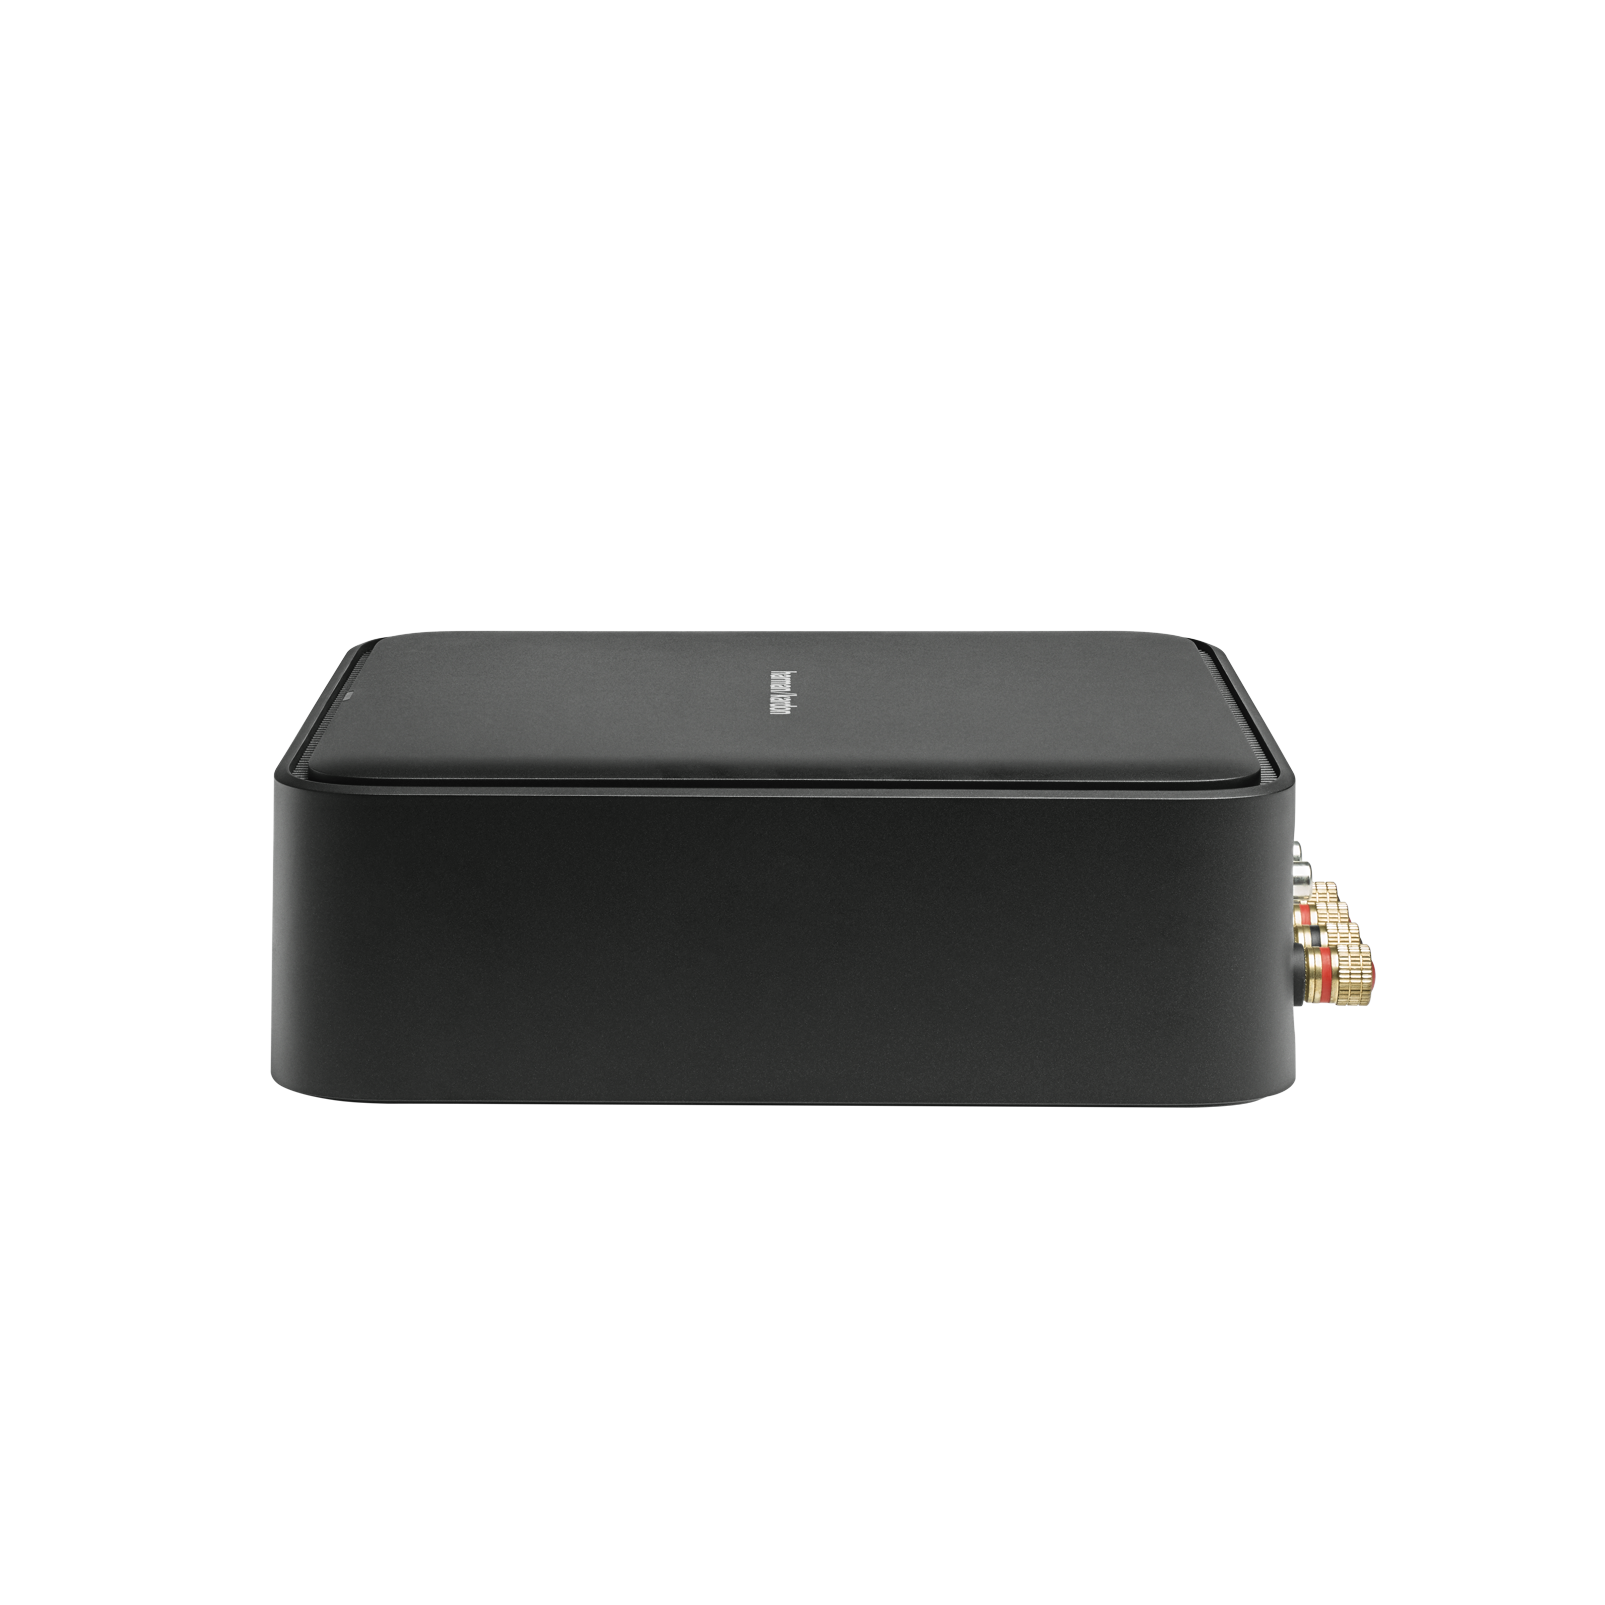 Harman Kardon Citation Amp - Black - High-power, wireless streaming stereo amplifier - Detailshot 1